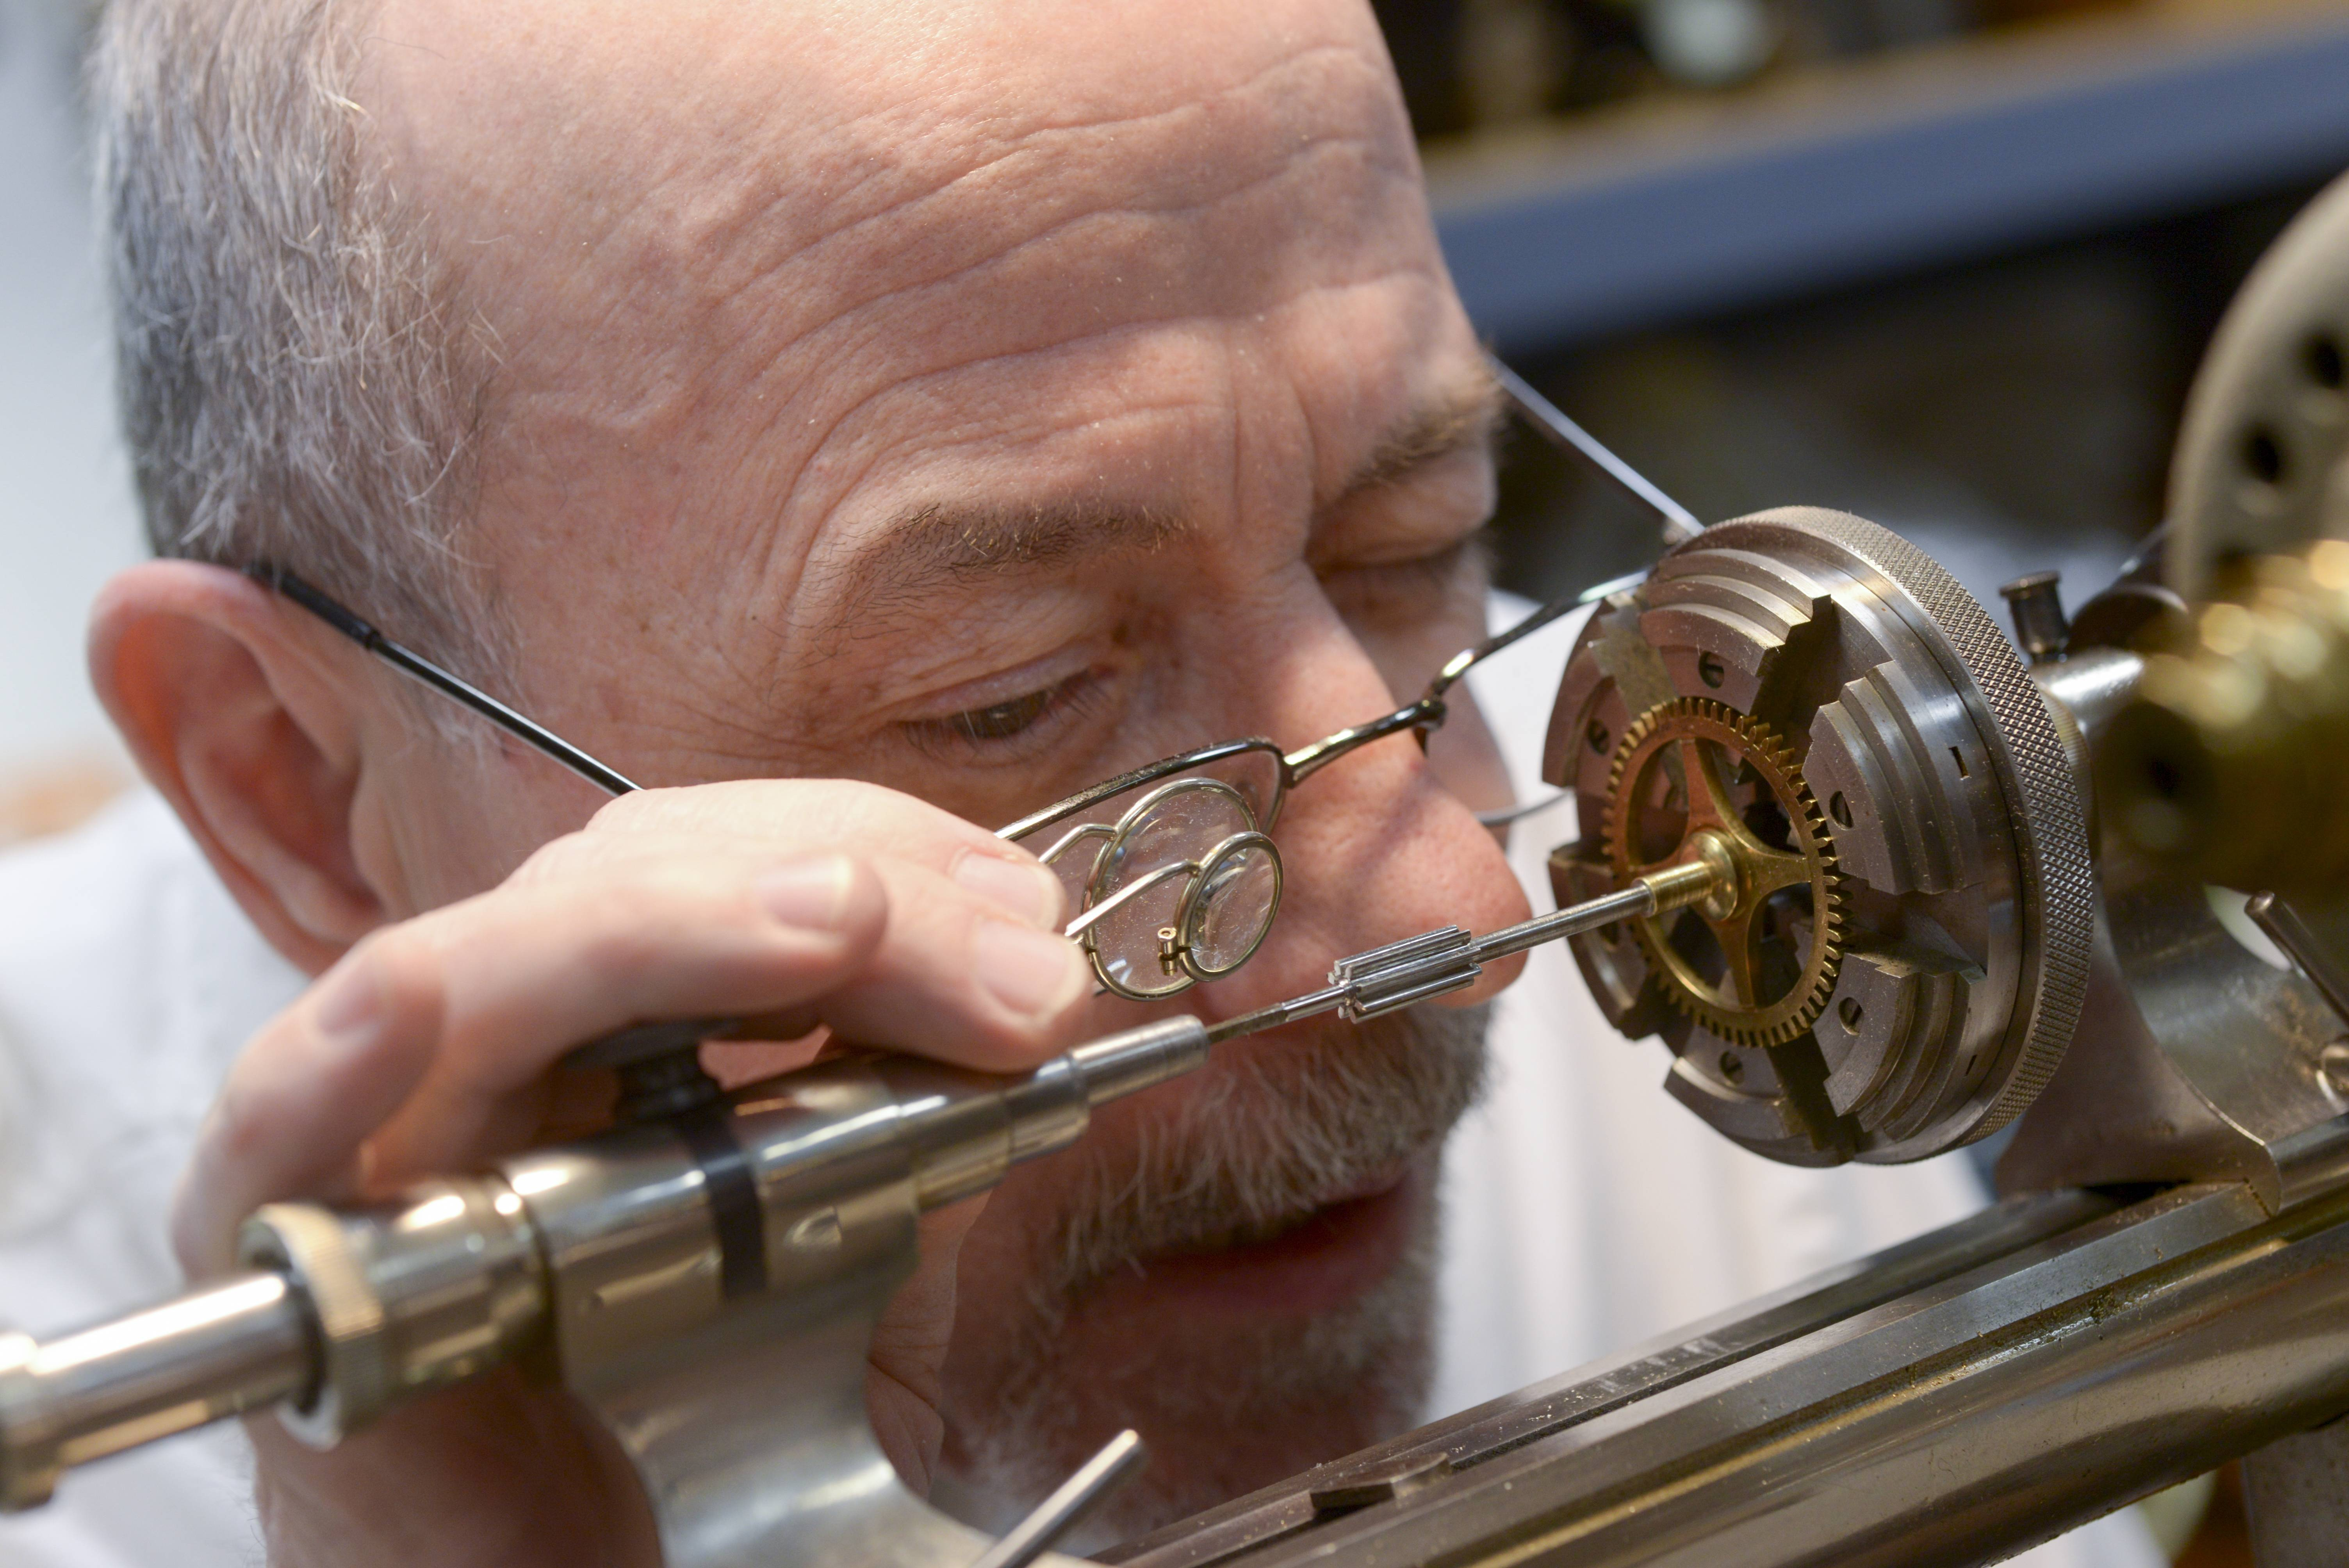 Certified master clockmaker Jim Lachapelle has to use a magnifying eyepiece to check the small and intricate parts of this 1890s clock.